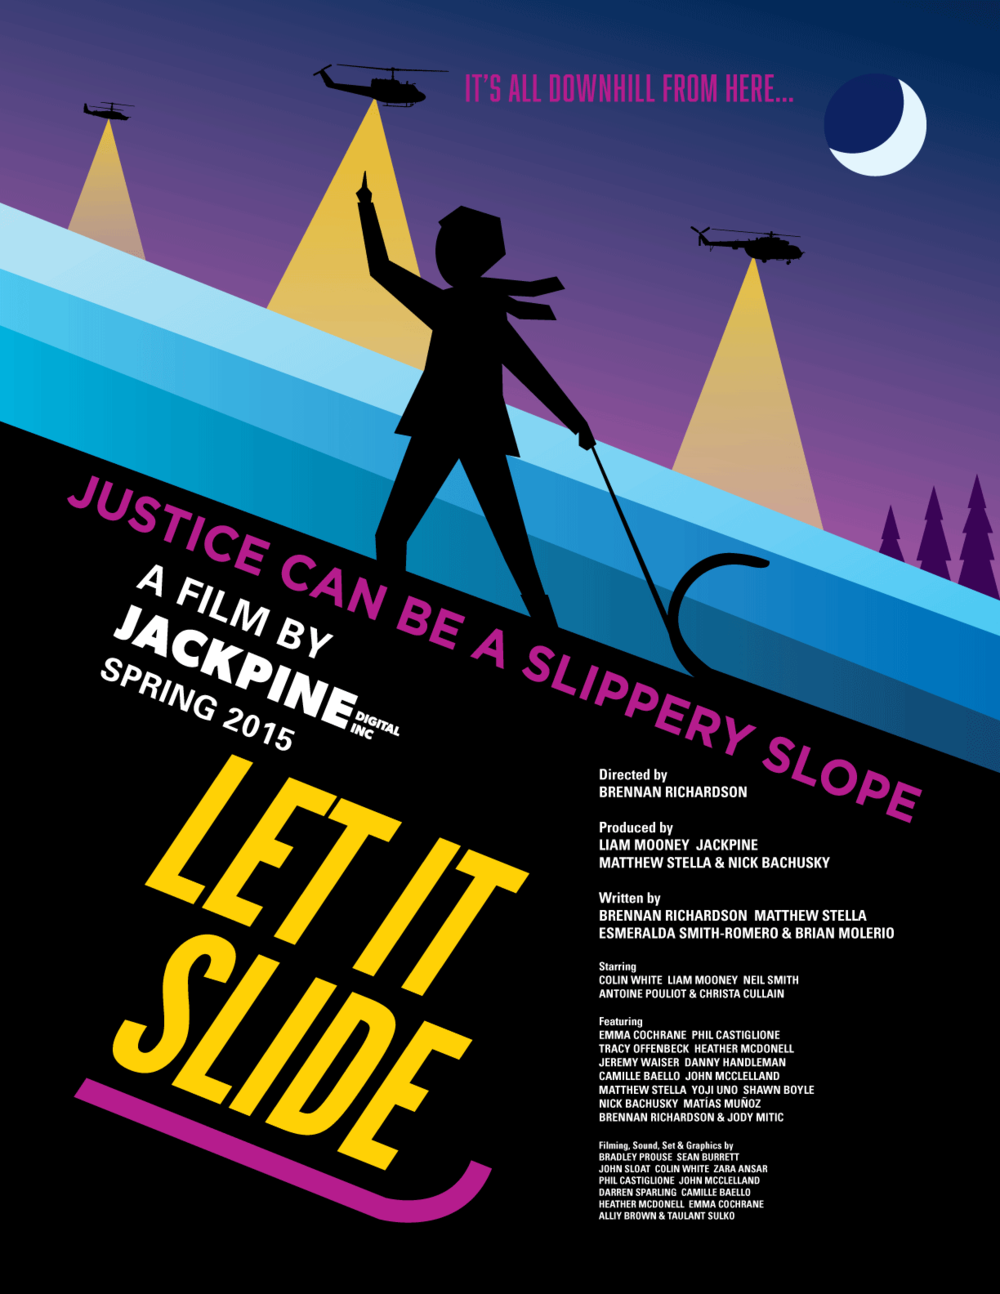 v2_LetItSlide_Poster_March2015-1e.png